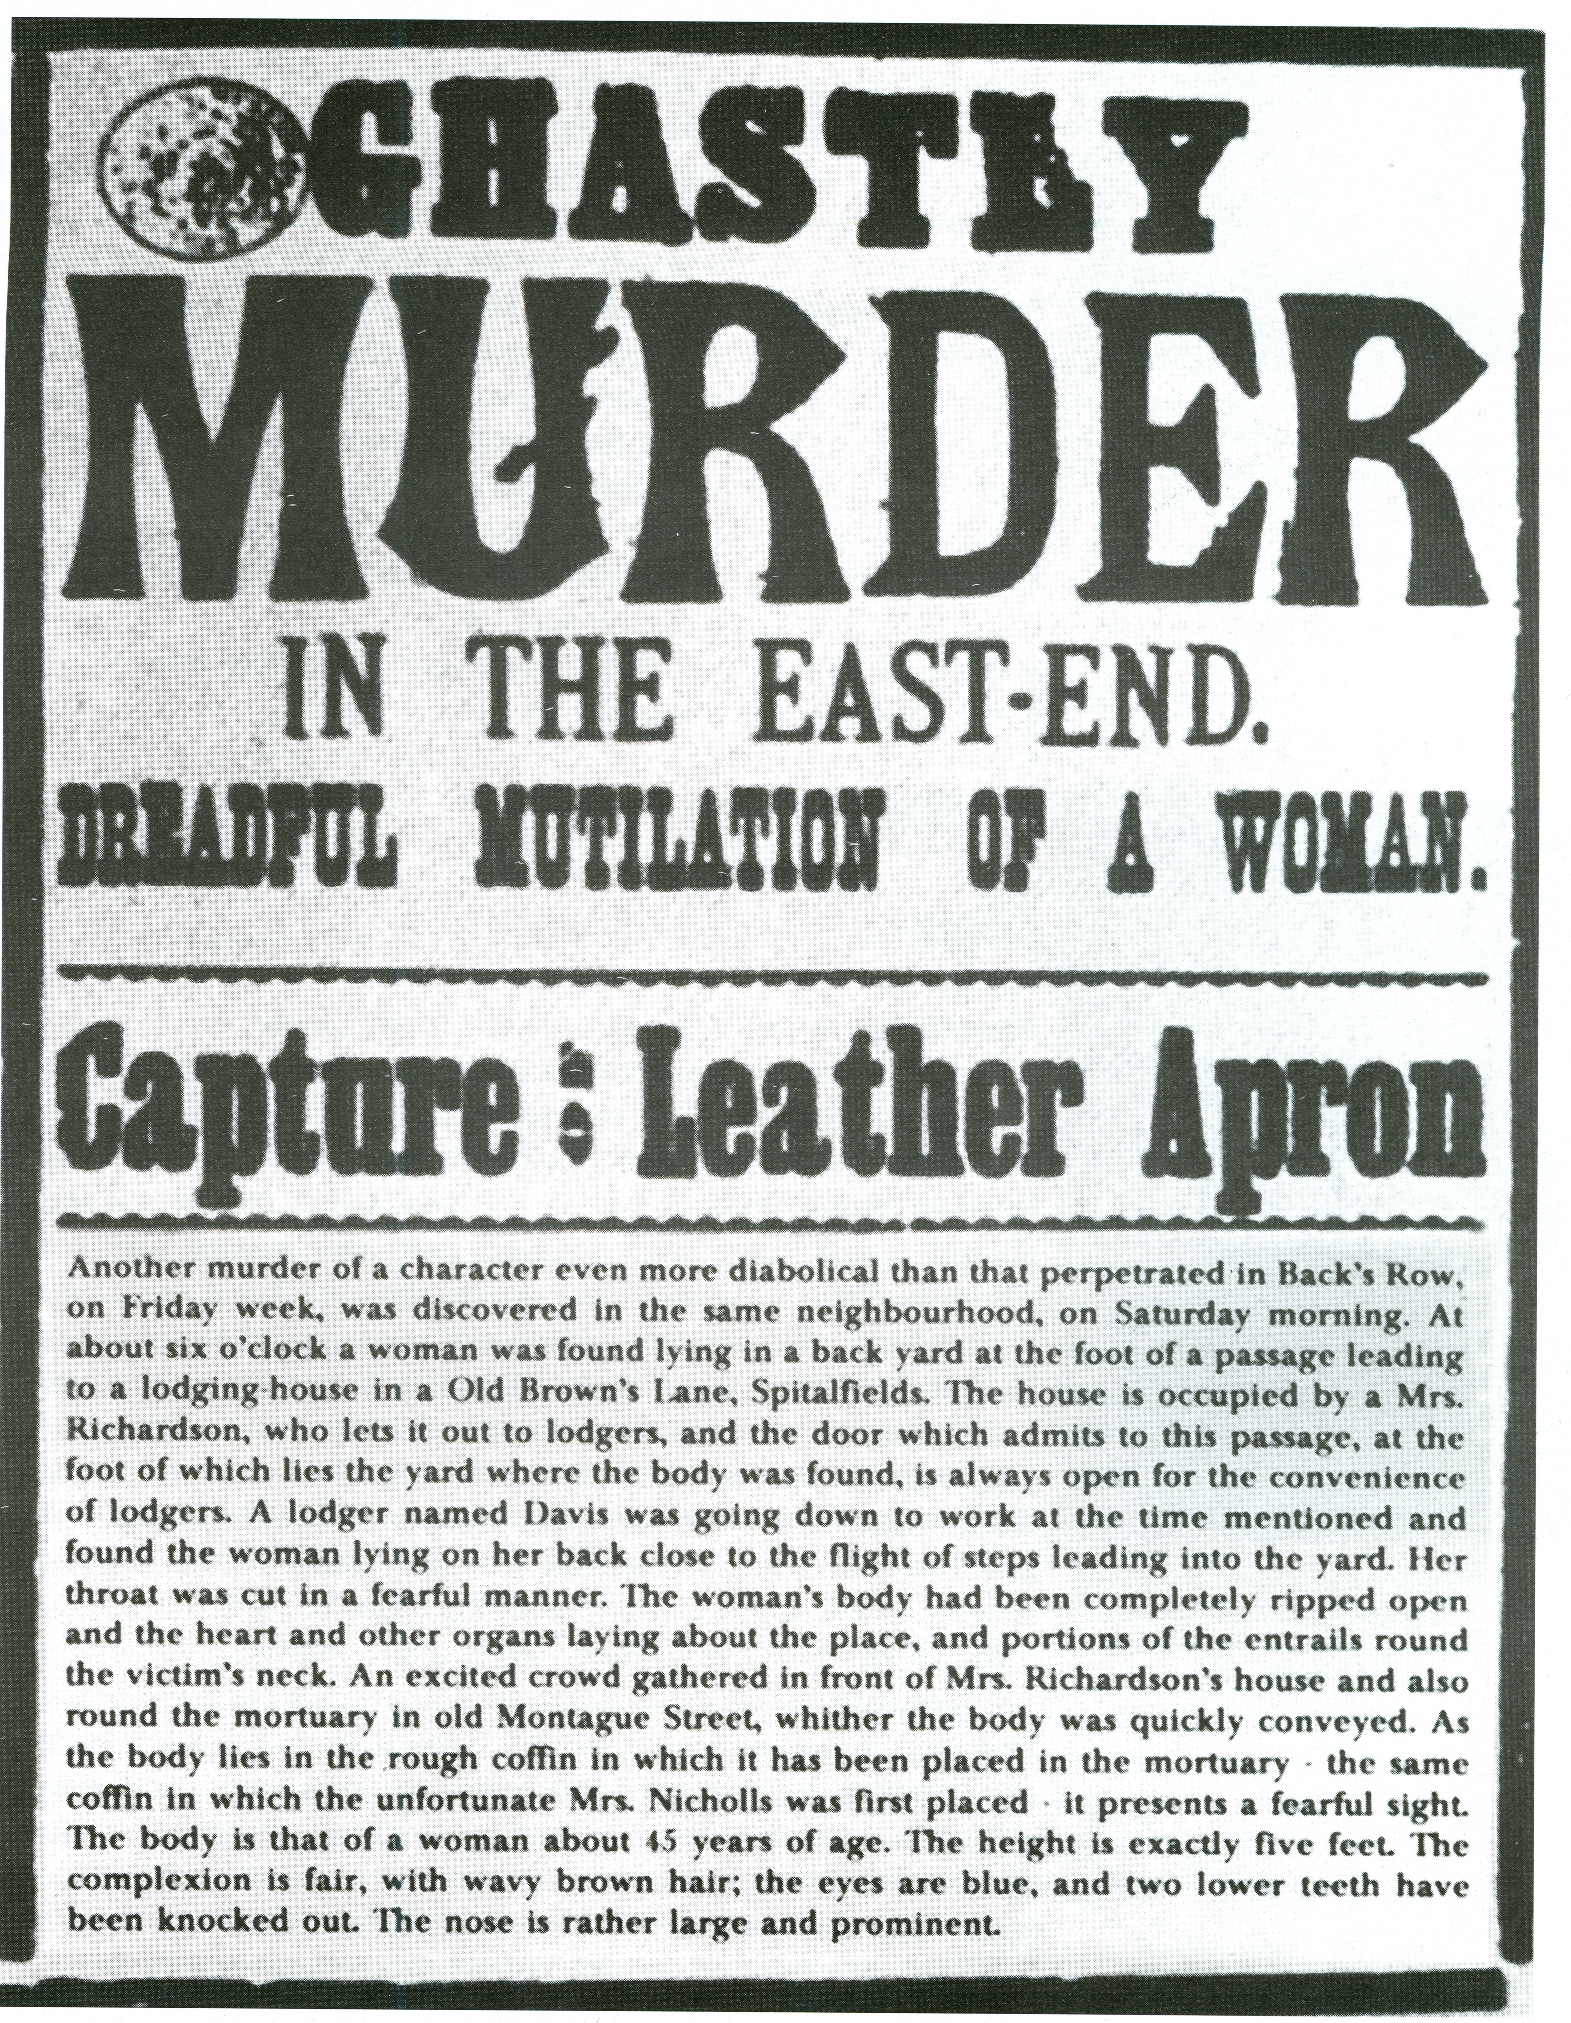 An image of a 19th century newspaper clipping about a 'ghastly murder' in the east-end of London.